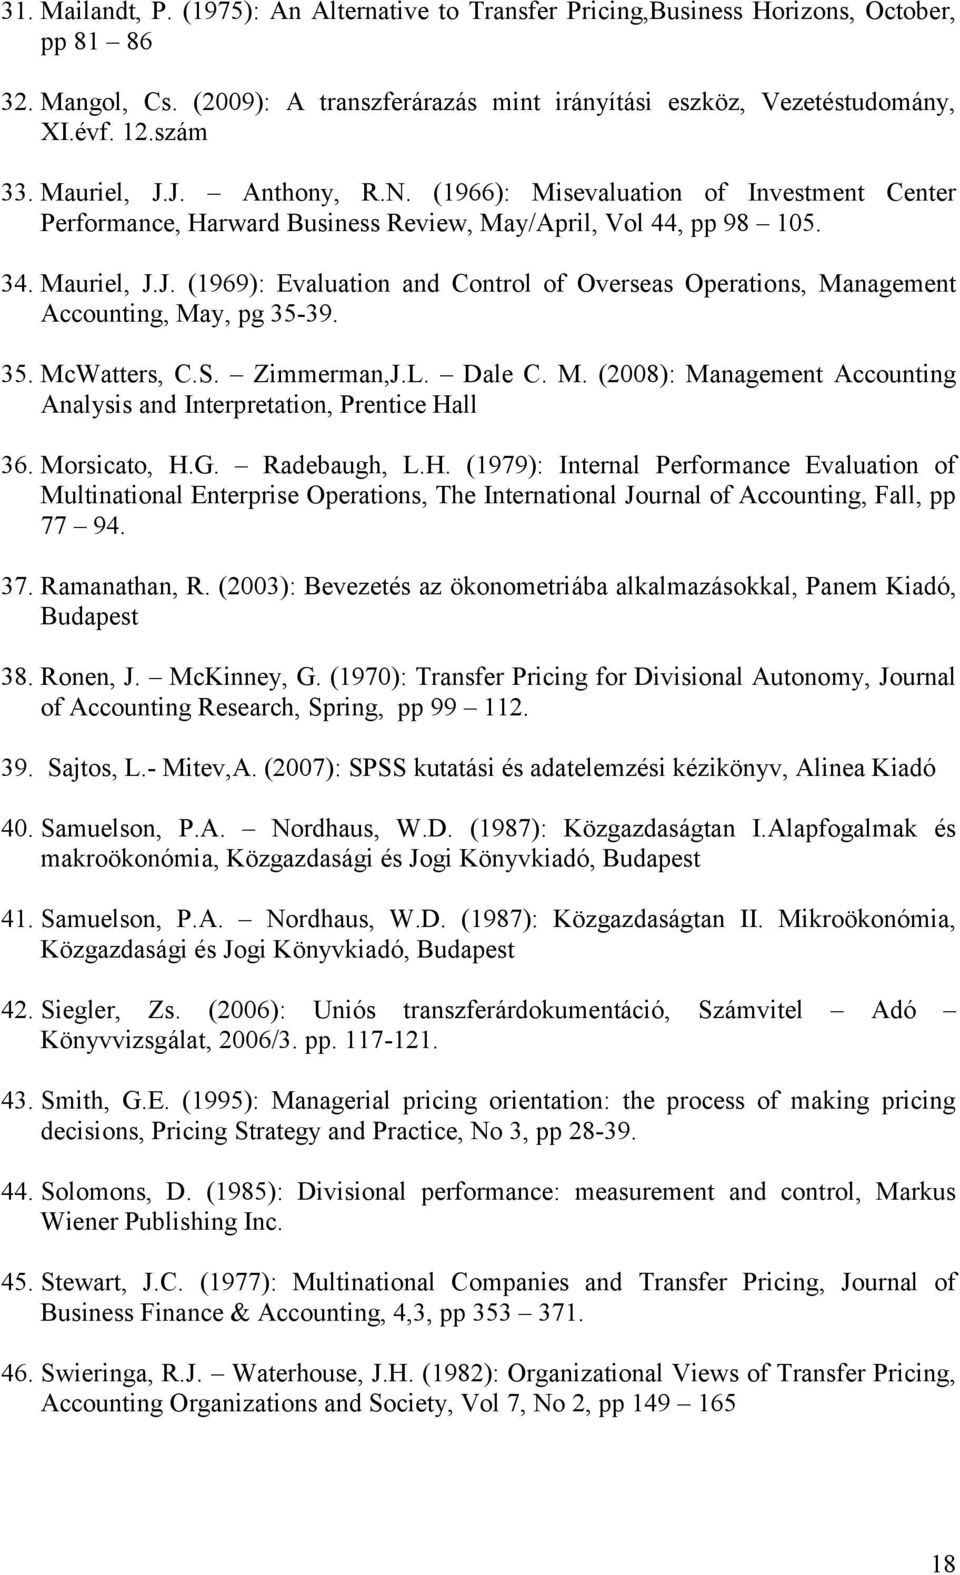 35. McWatters, C.S. Zimmerman,J.L. Dale C. M. (2008): Management Accounting Analysis and Interpretation, Prentice Ha